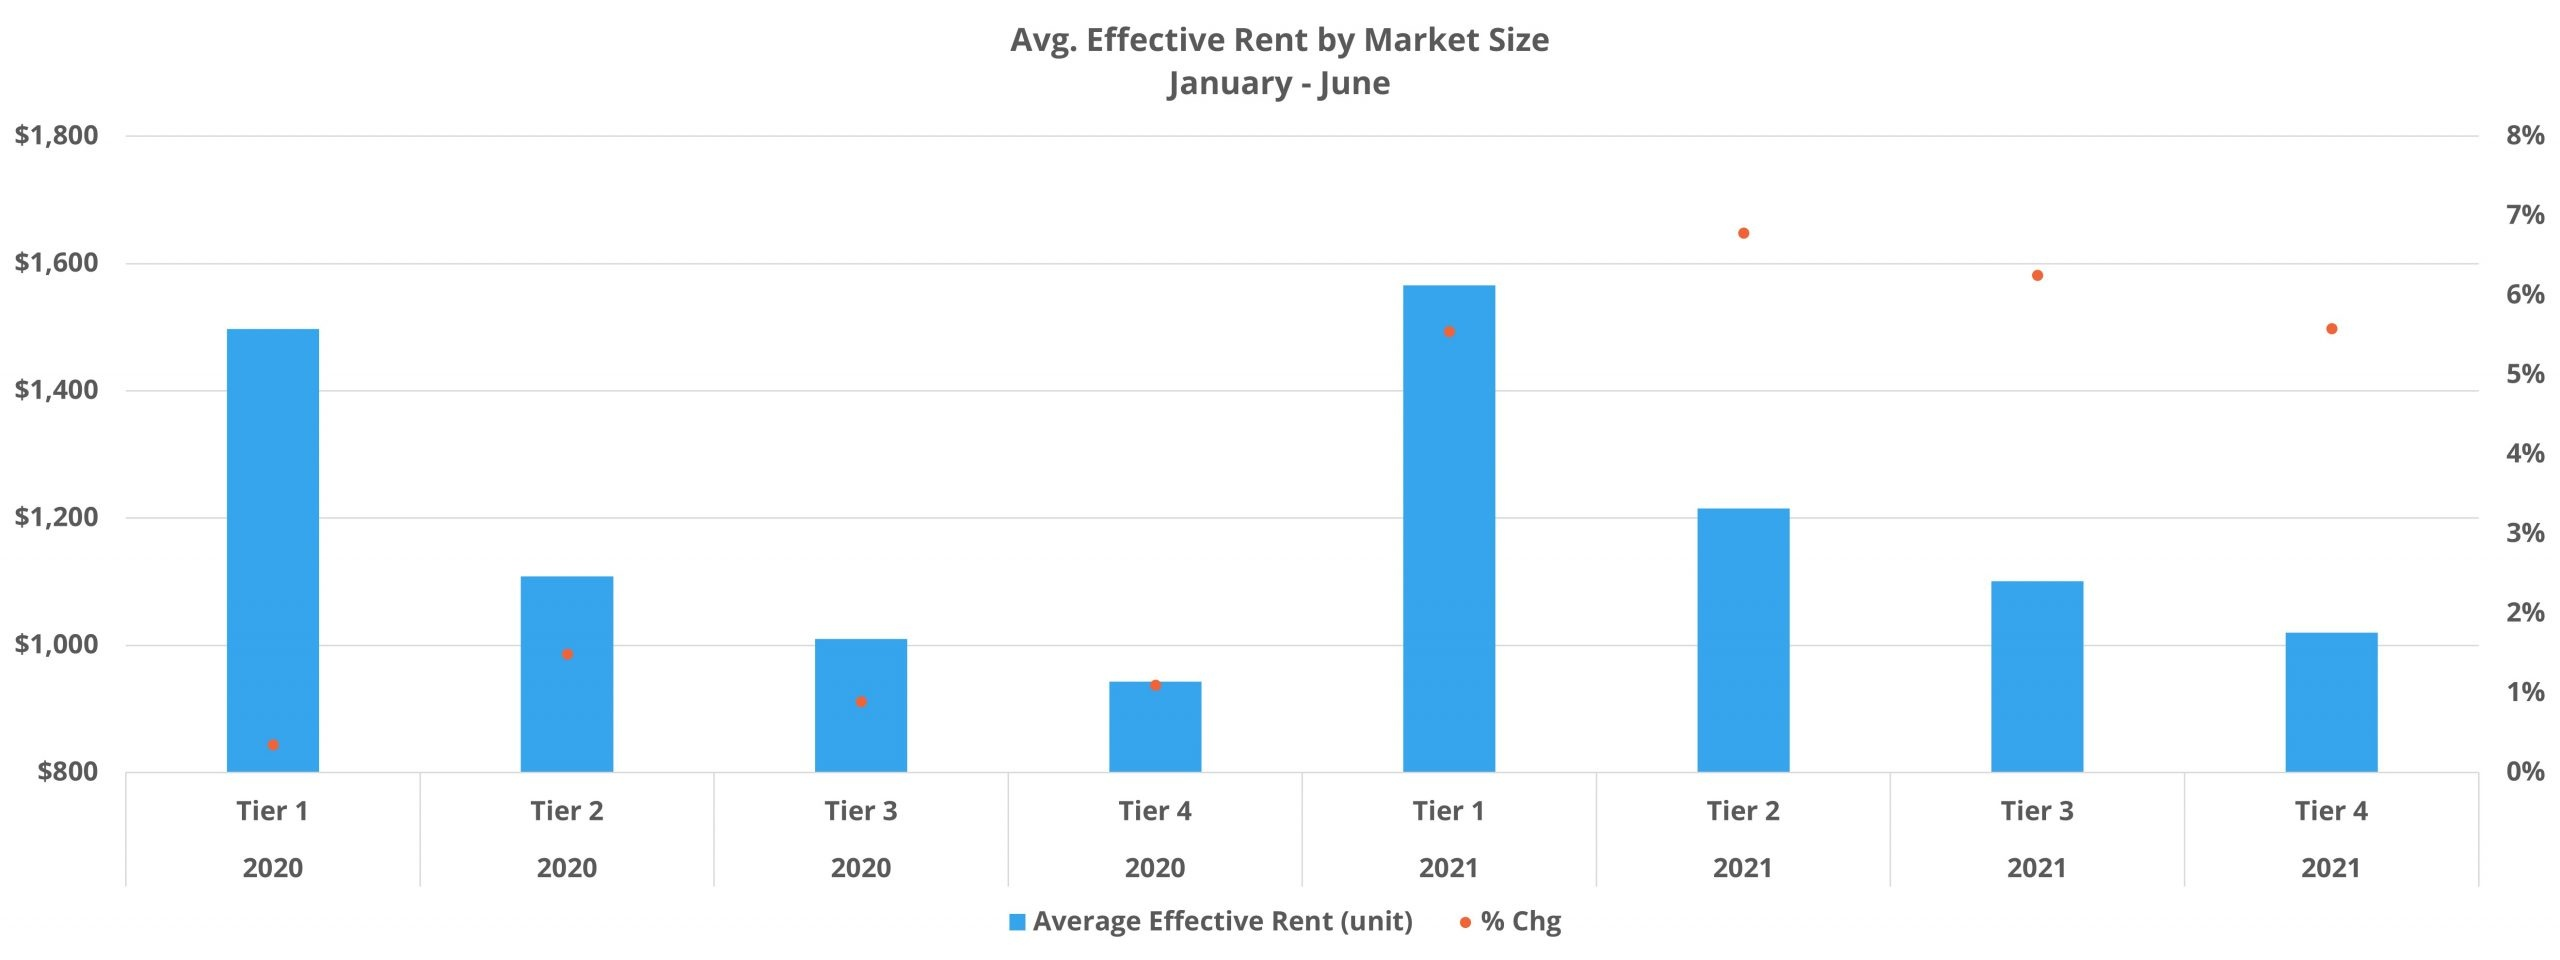 Avg. Effective Rent by Market Size